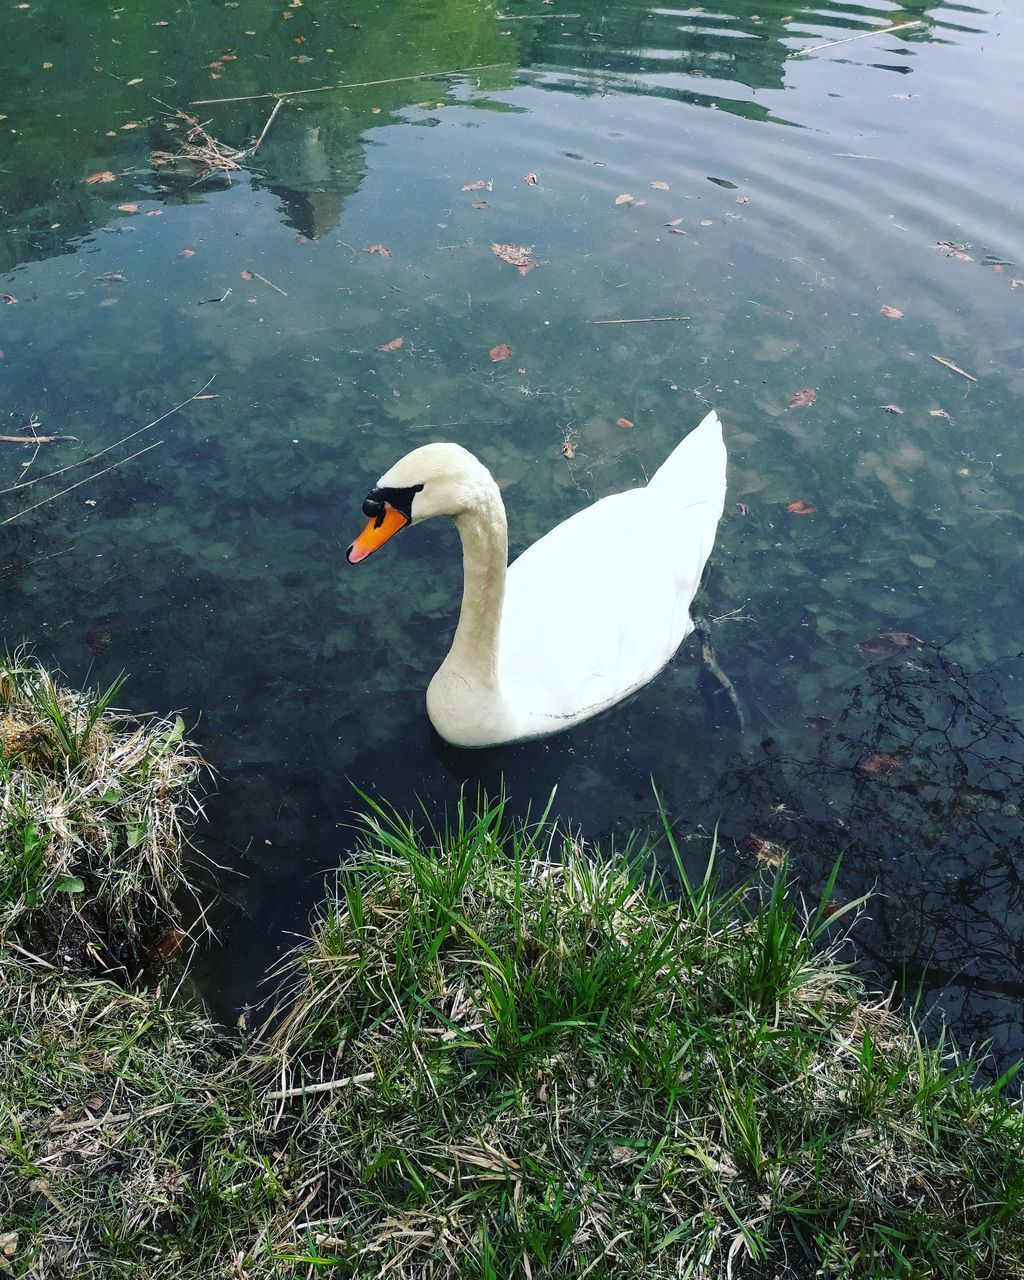 animals in the wild, animal wildlife, animal, animal themes, vertebrate, water, bird, swan, lake, one animal, nature, swimming, plant, day, water bird, high angle view, no people, mute swan, white color, floating on water, animal neck